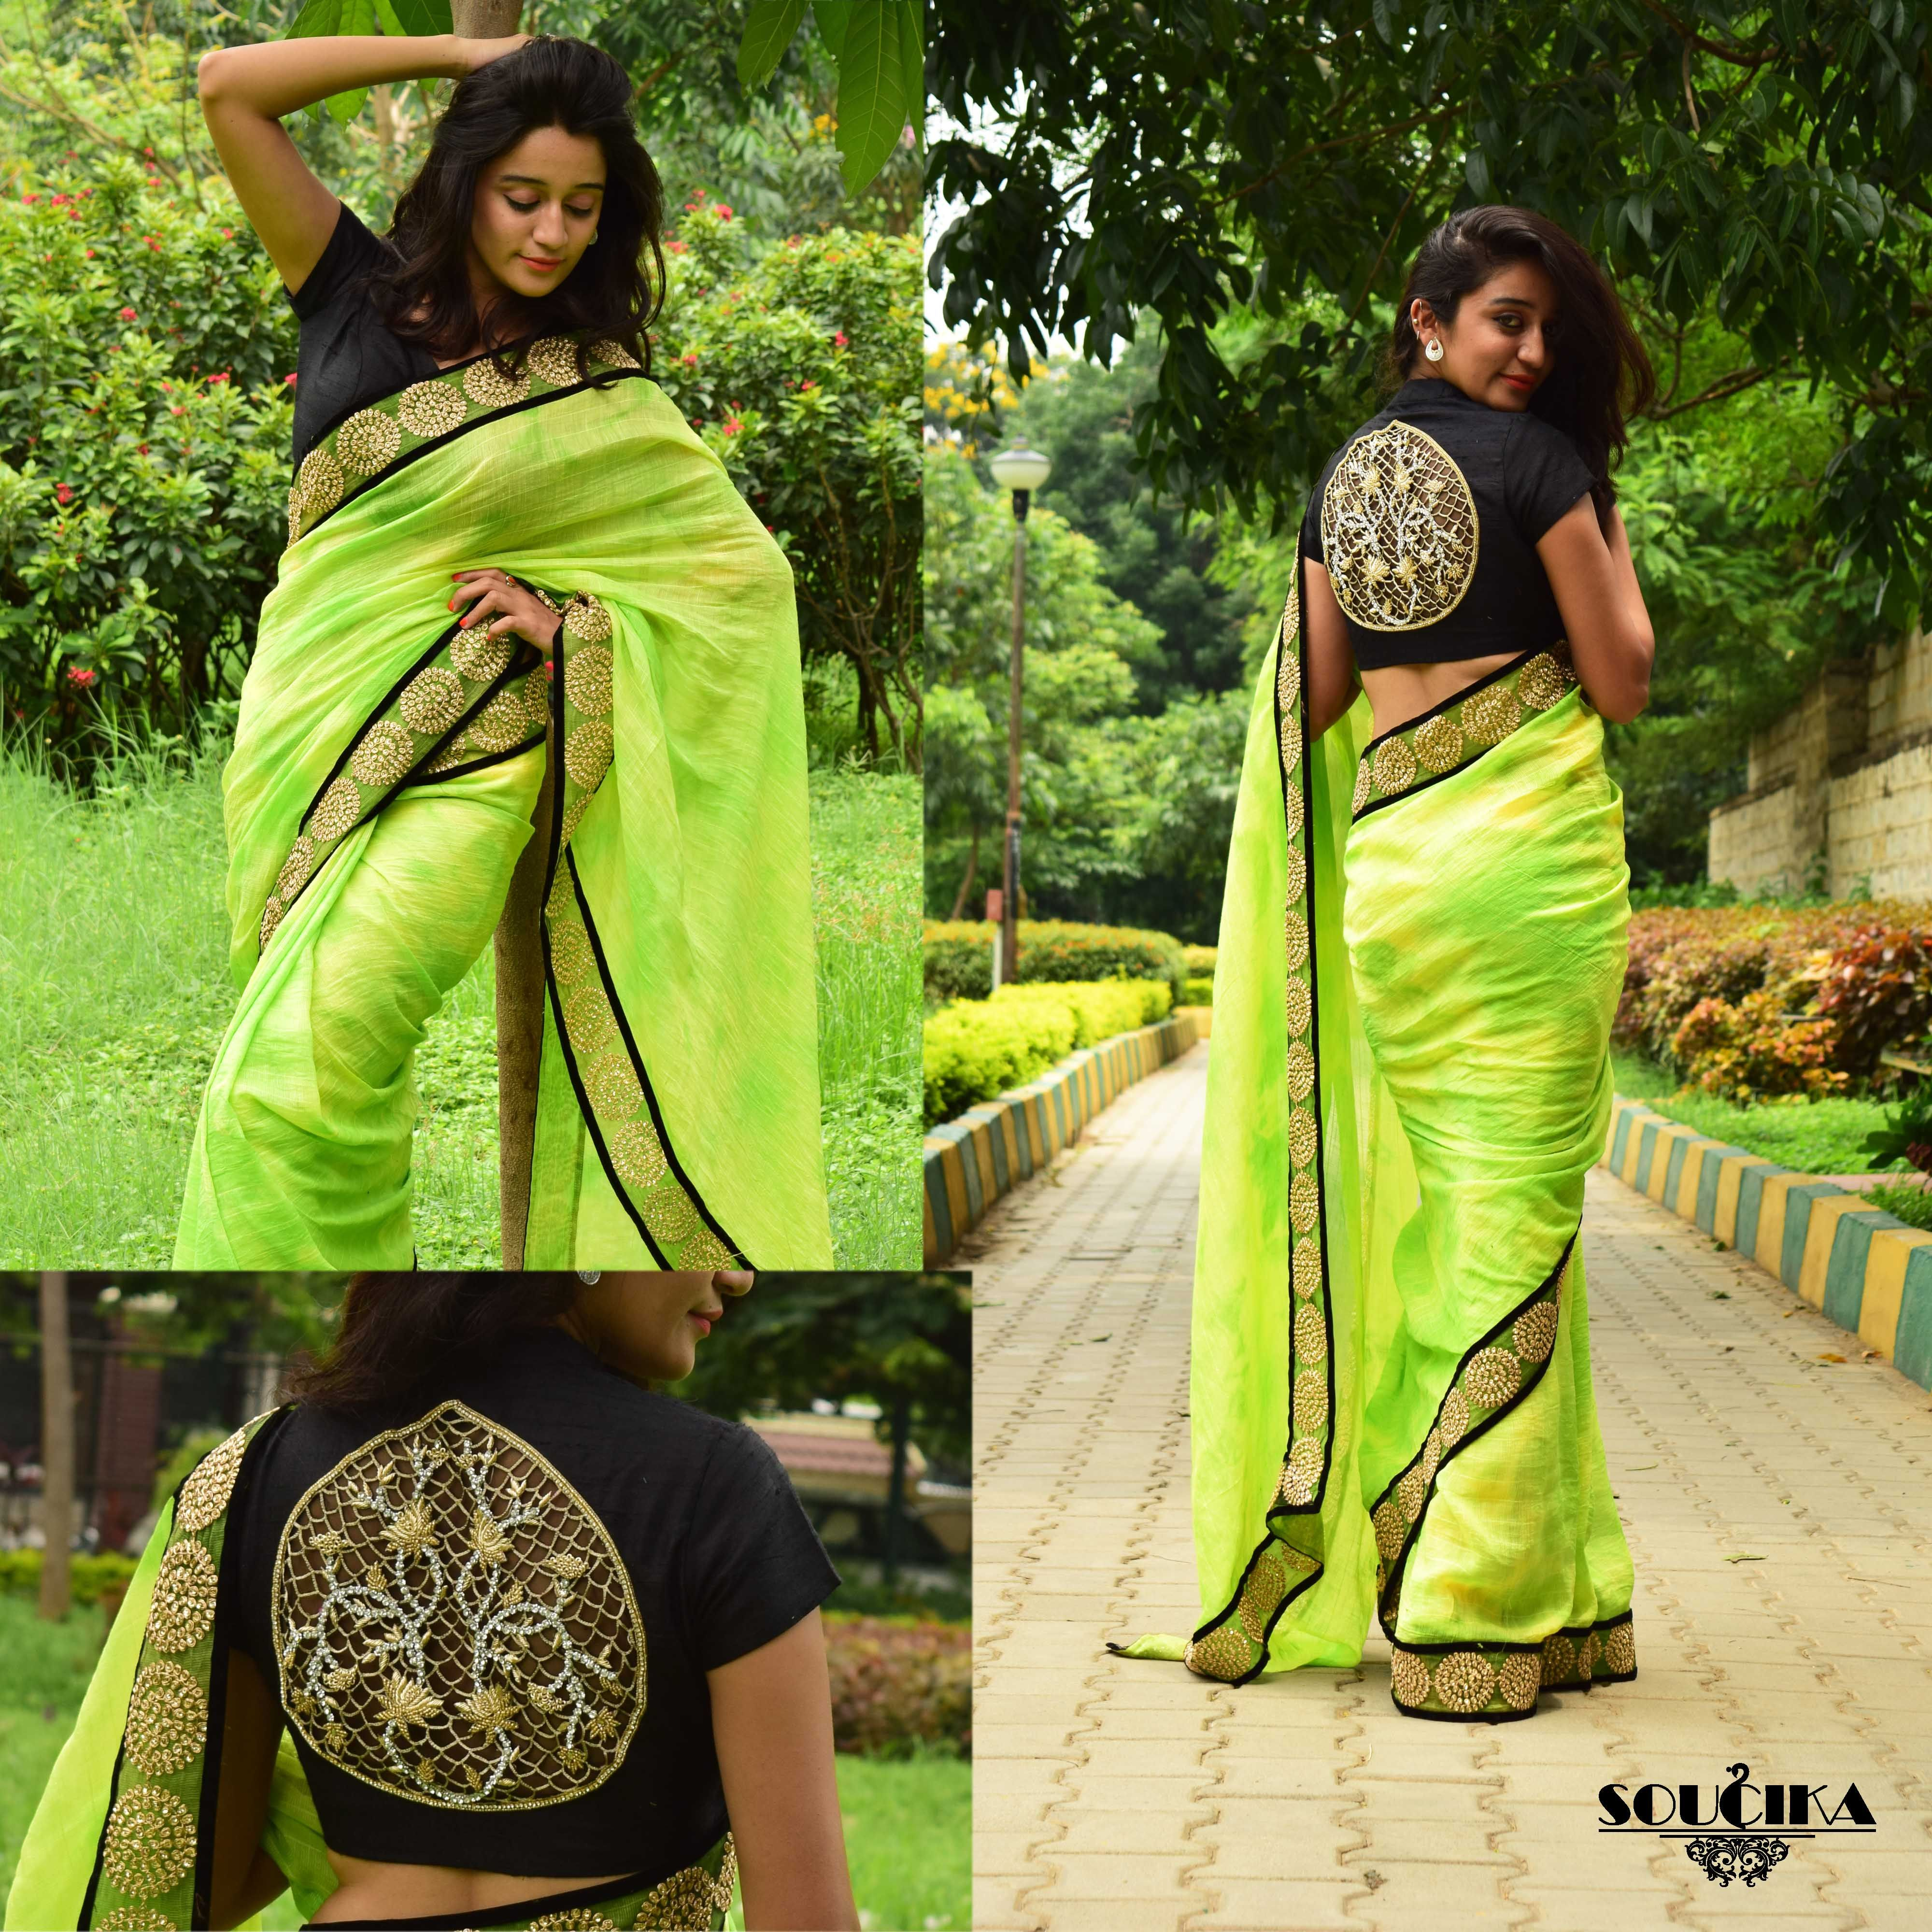 c11d6068625d3 Lime green saree with black raw silk hand embroidered blouse   kamalrajmanickath  soucika  saree  fashion  saree  blouse  black  green